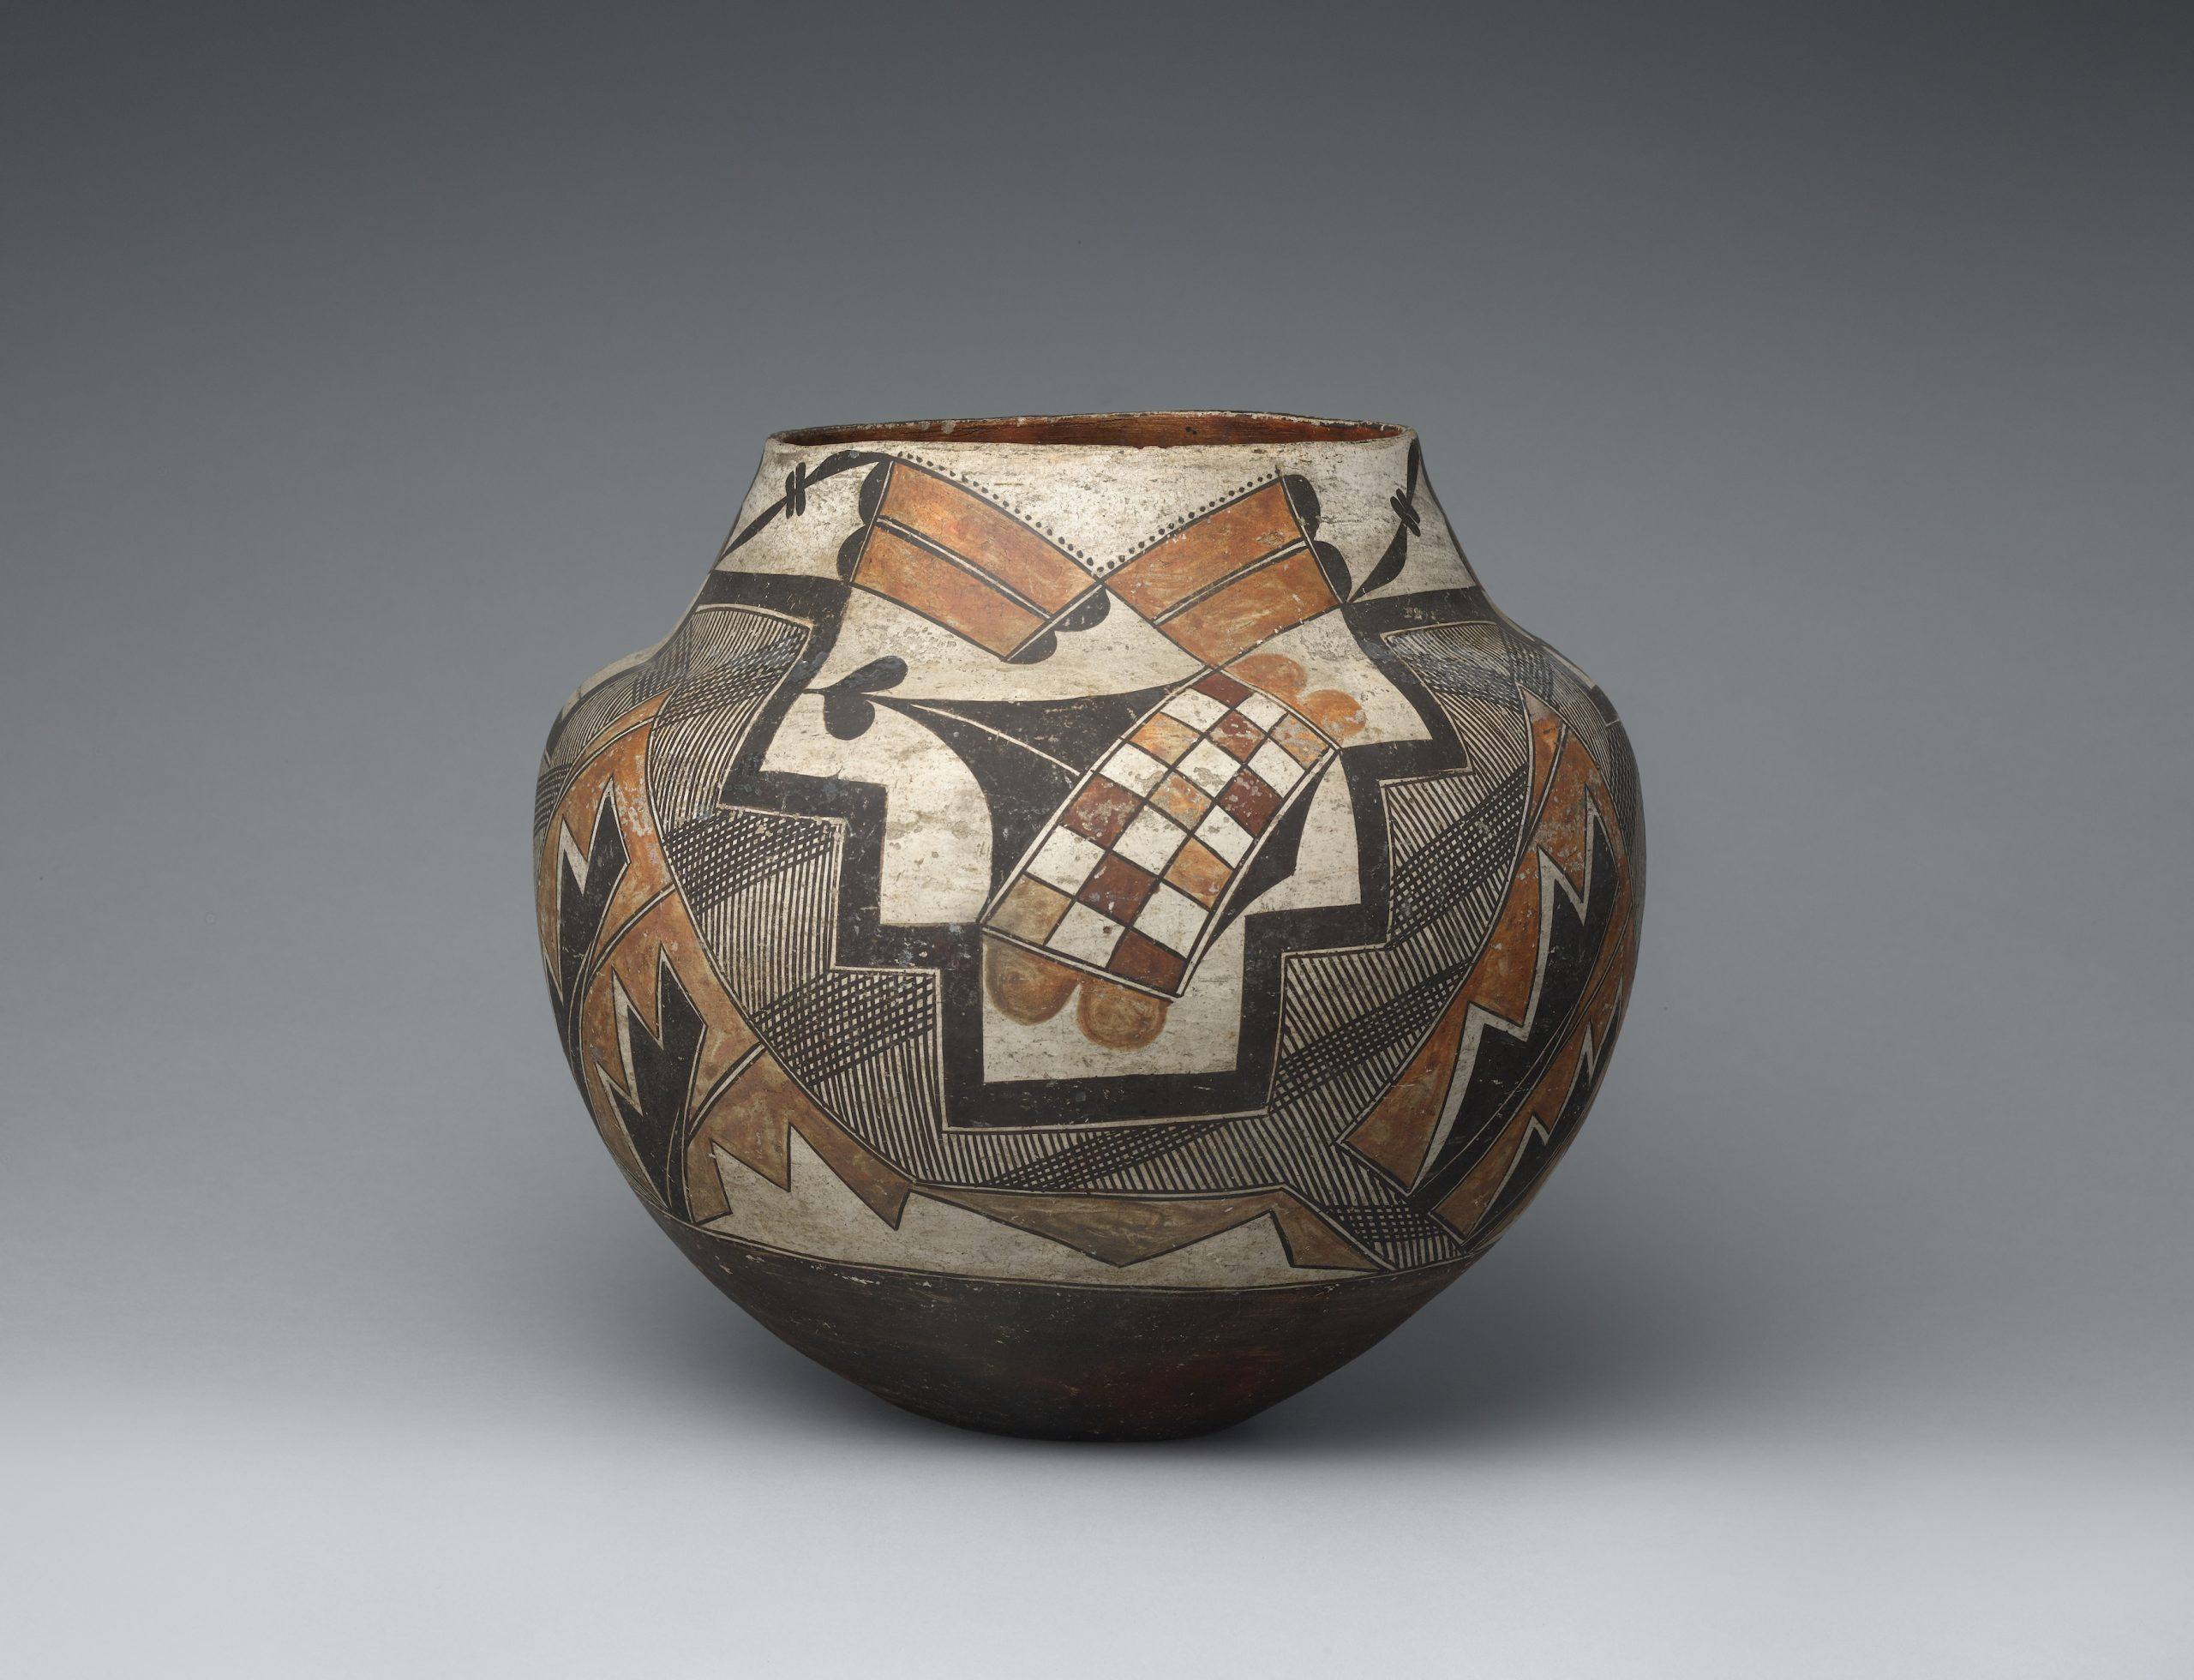 A four-color olla decorated with geometric shapes and checkered designs.